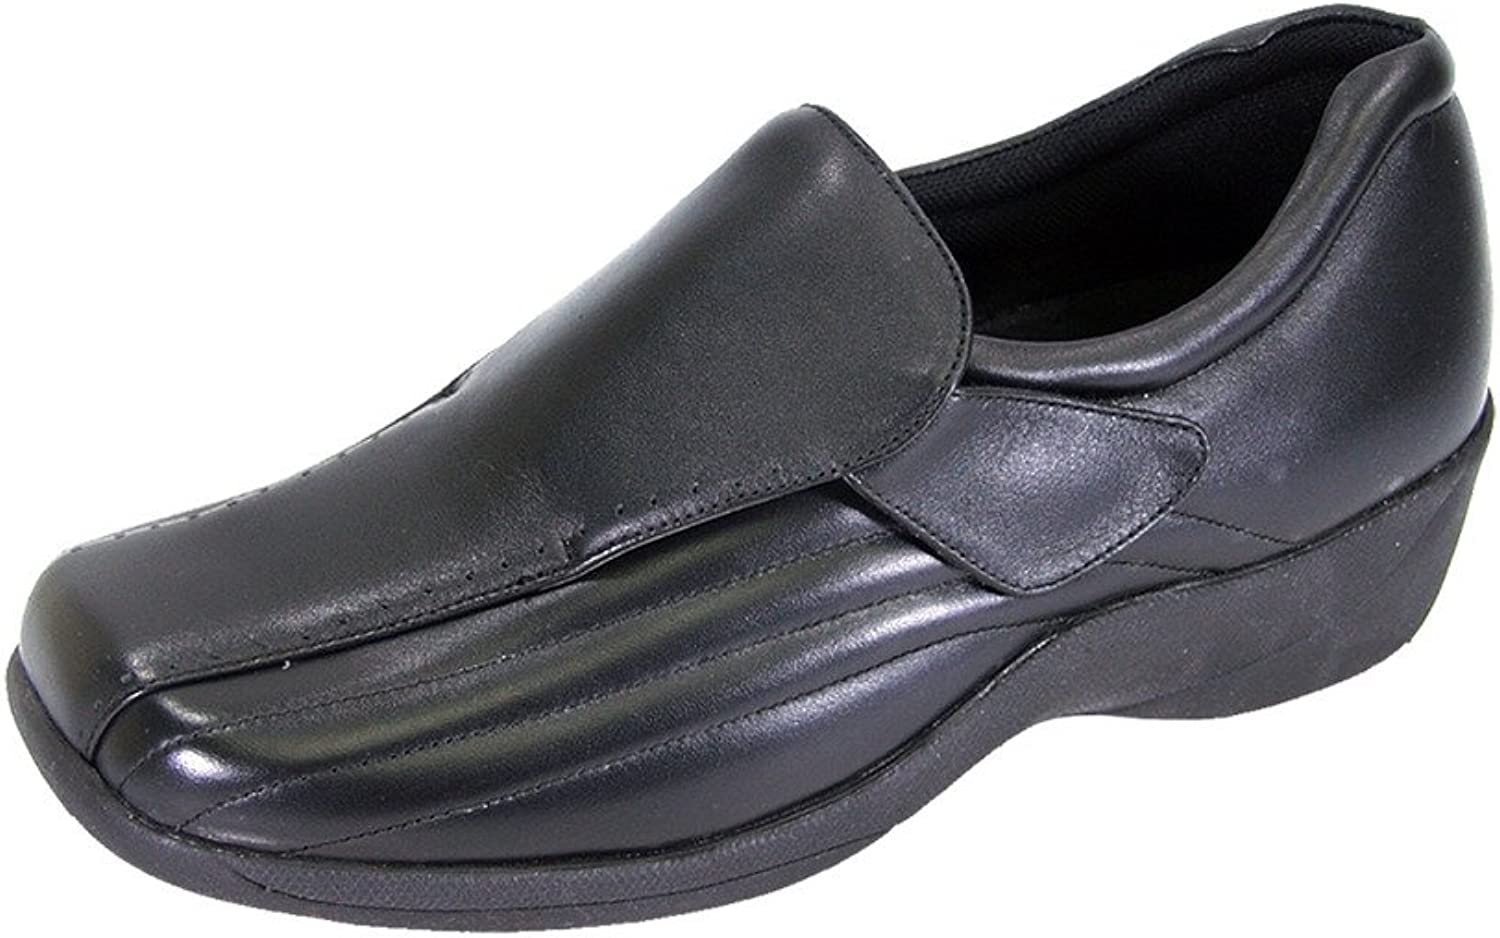 24 Hour Comfort Odele Women Wide Width Trendy Elegant Durable Cushioned Leather Slip On Work shoes